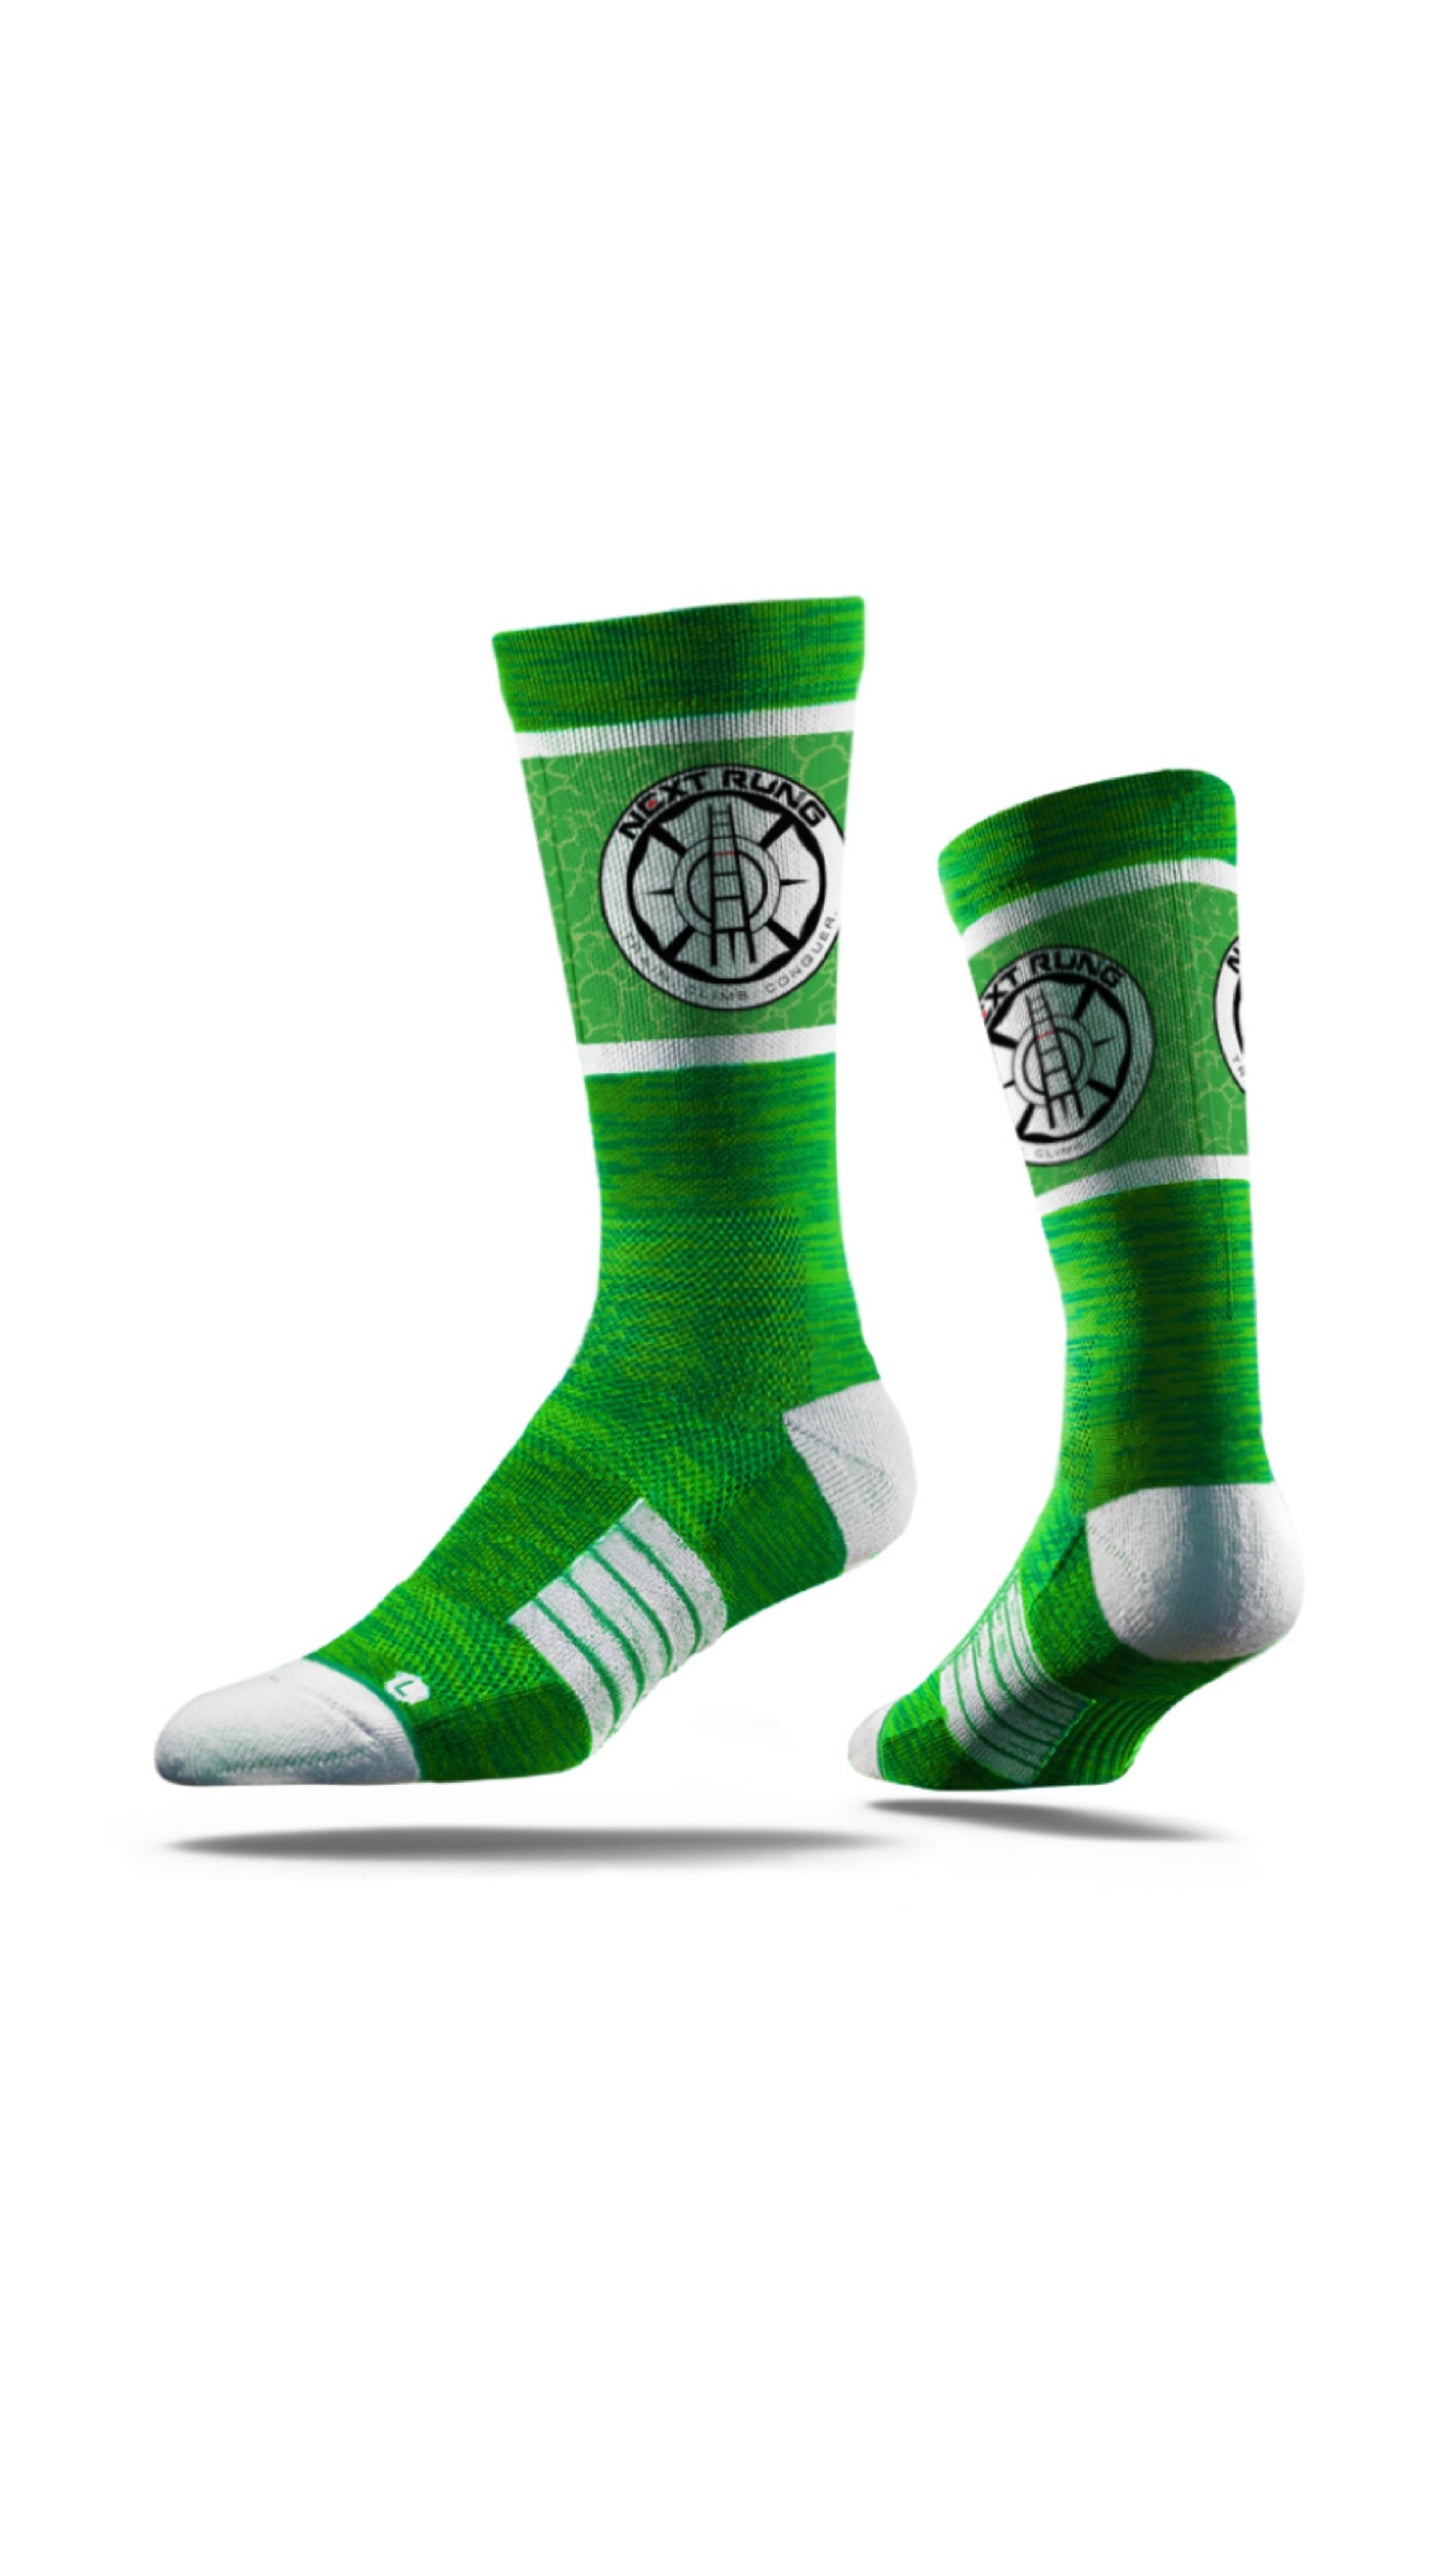 The GREEN Sock